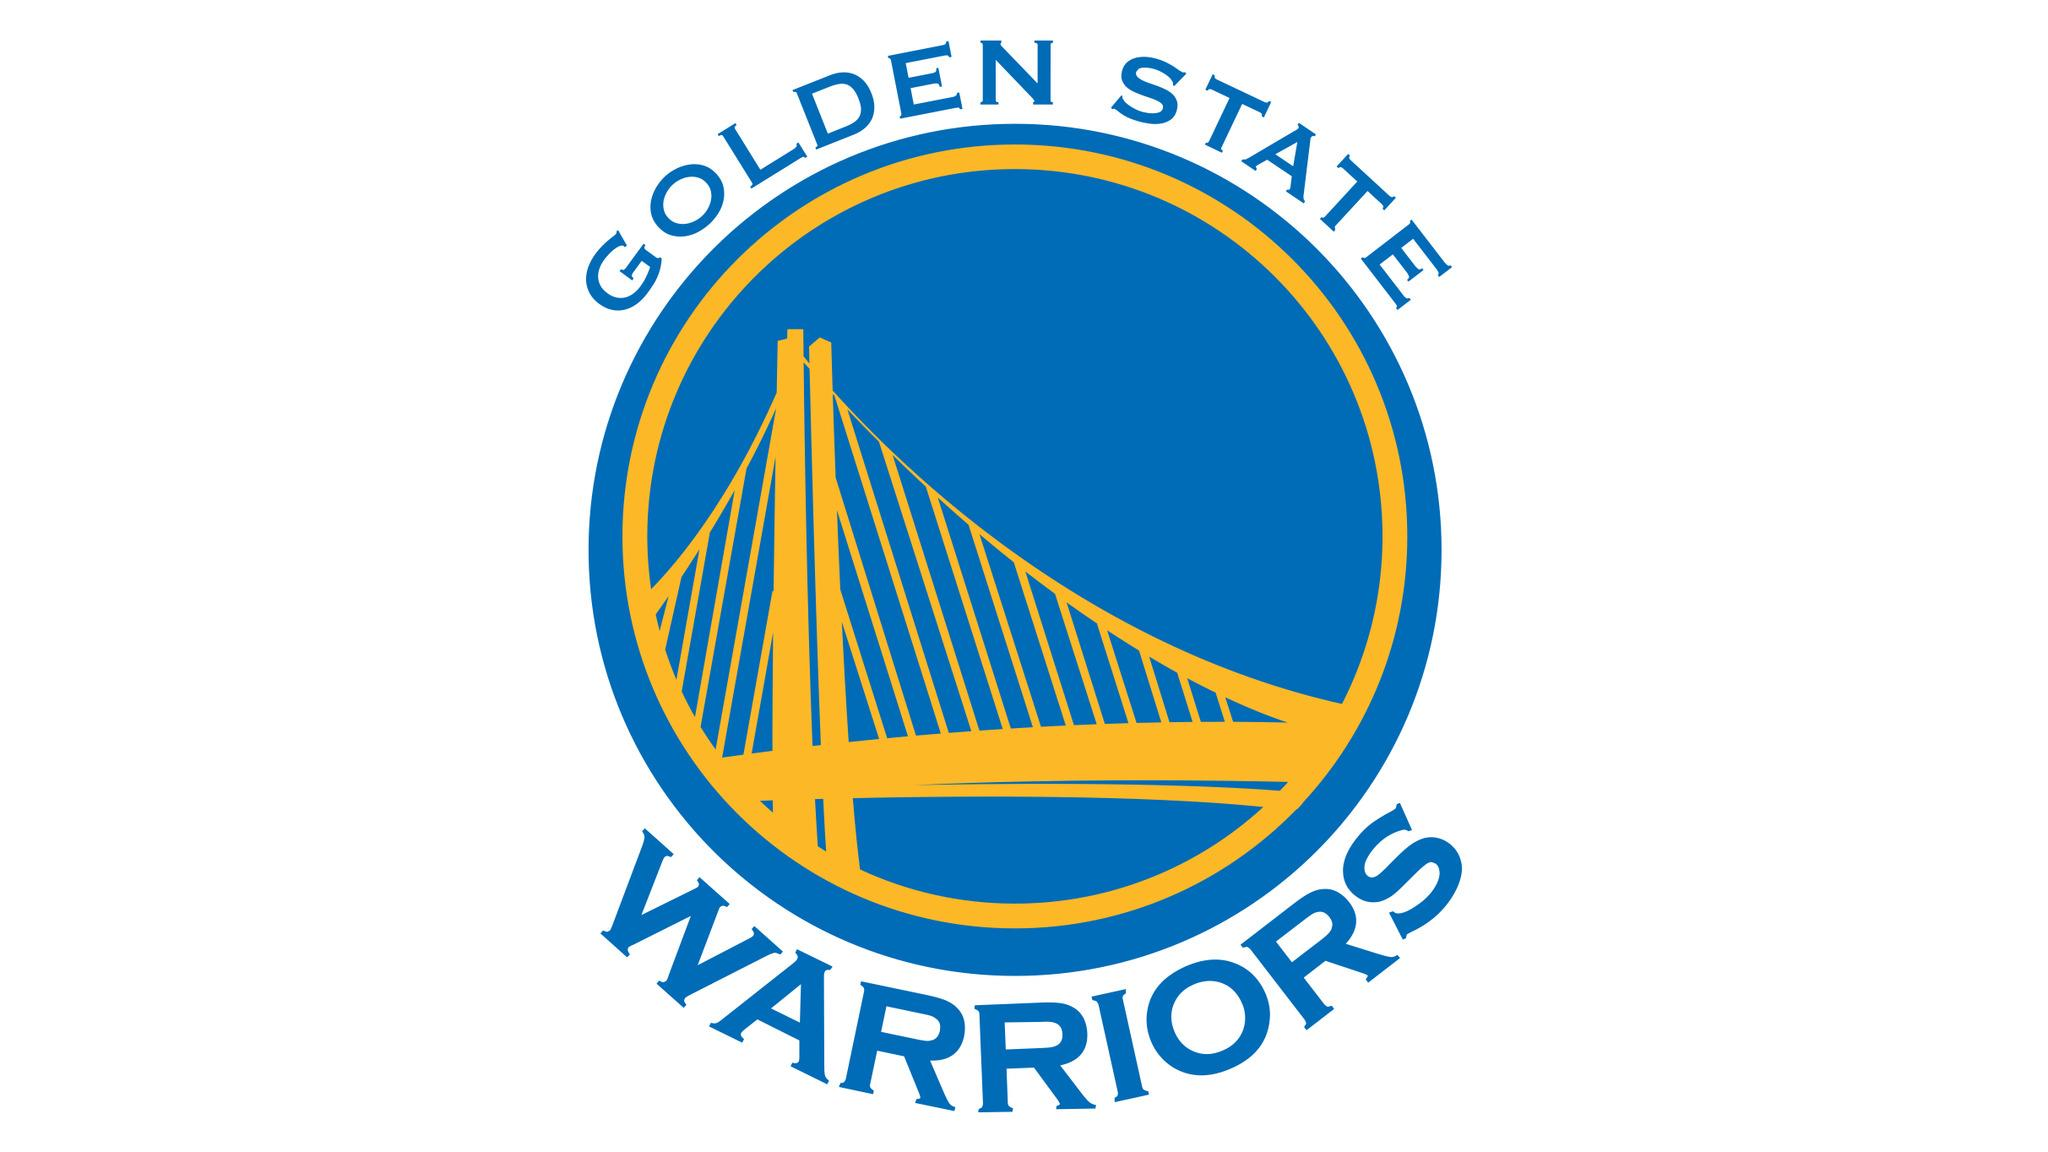 Golden State Warriors vs. Memphis Grizzlies